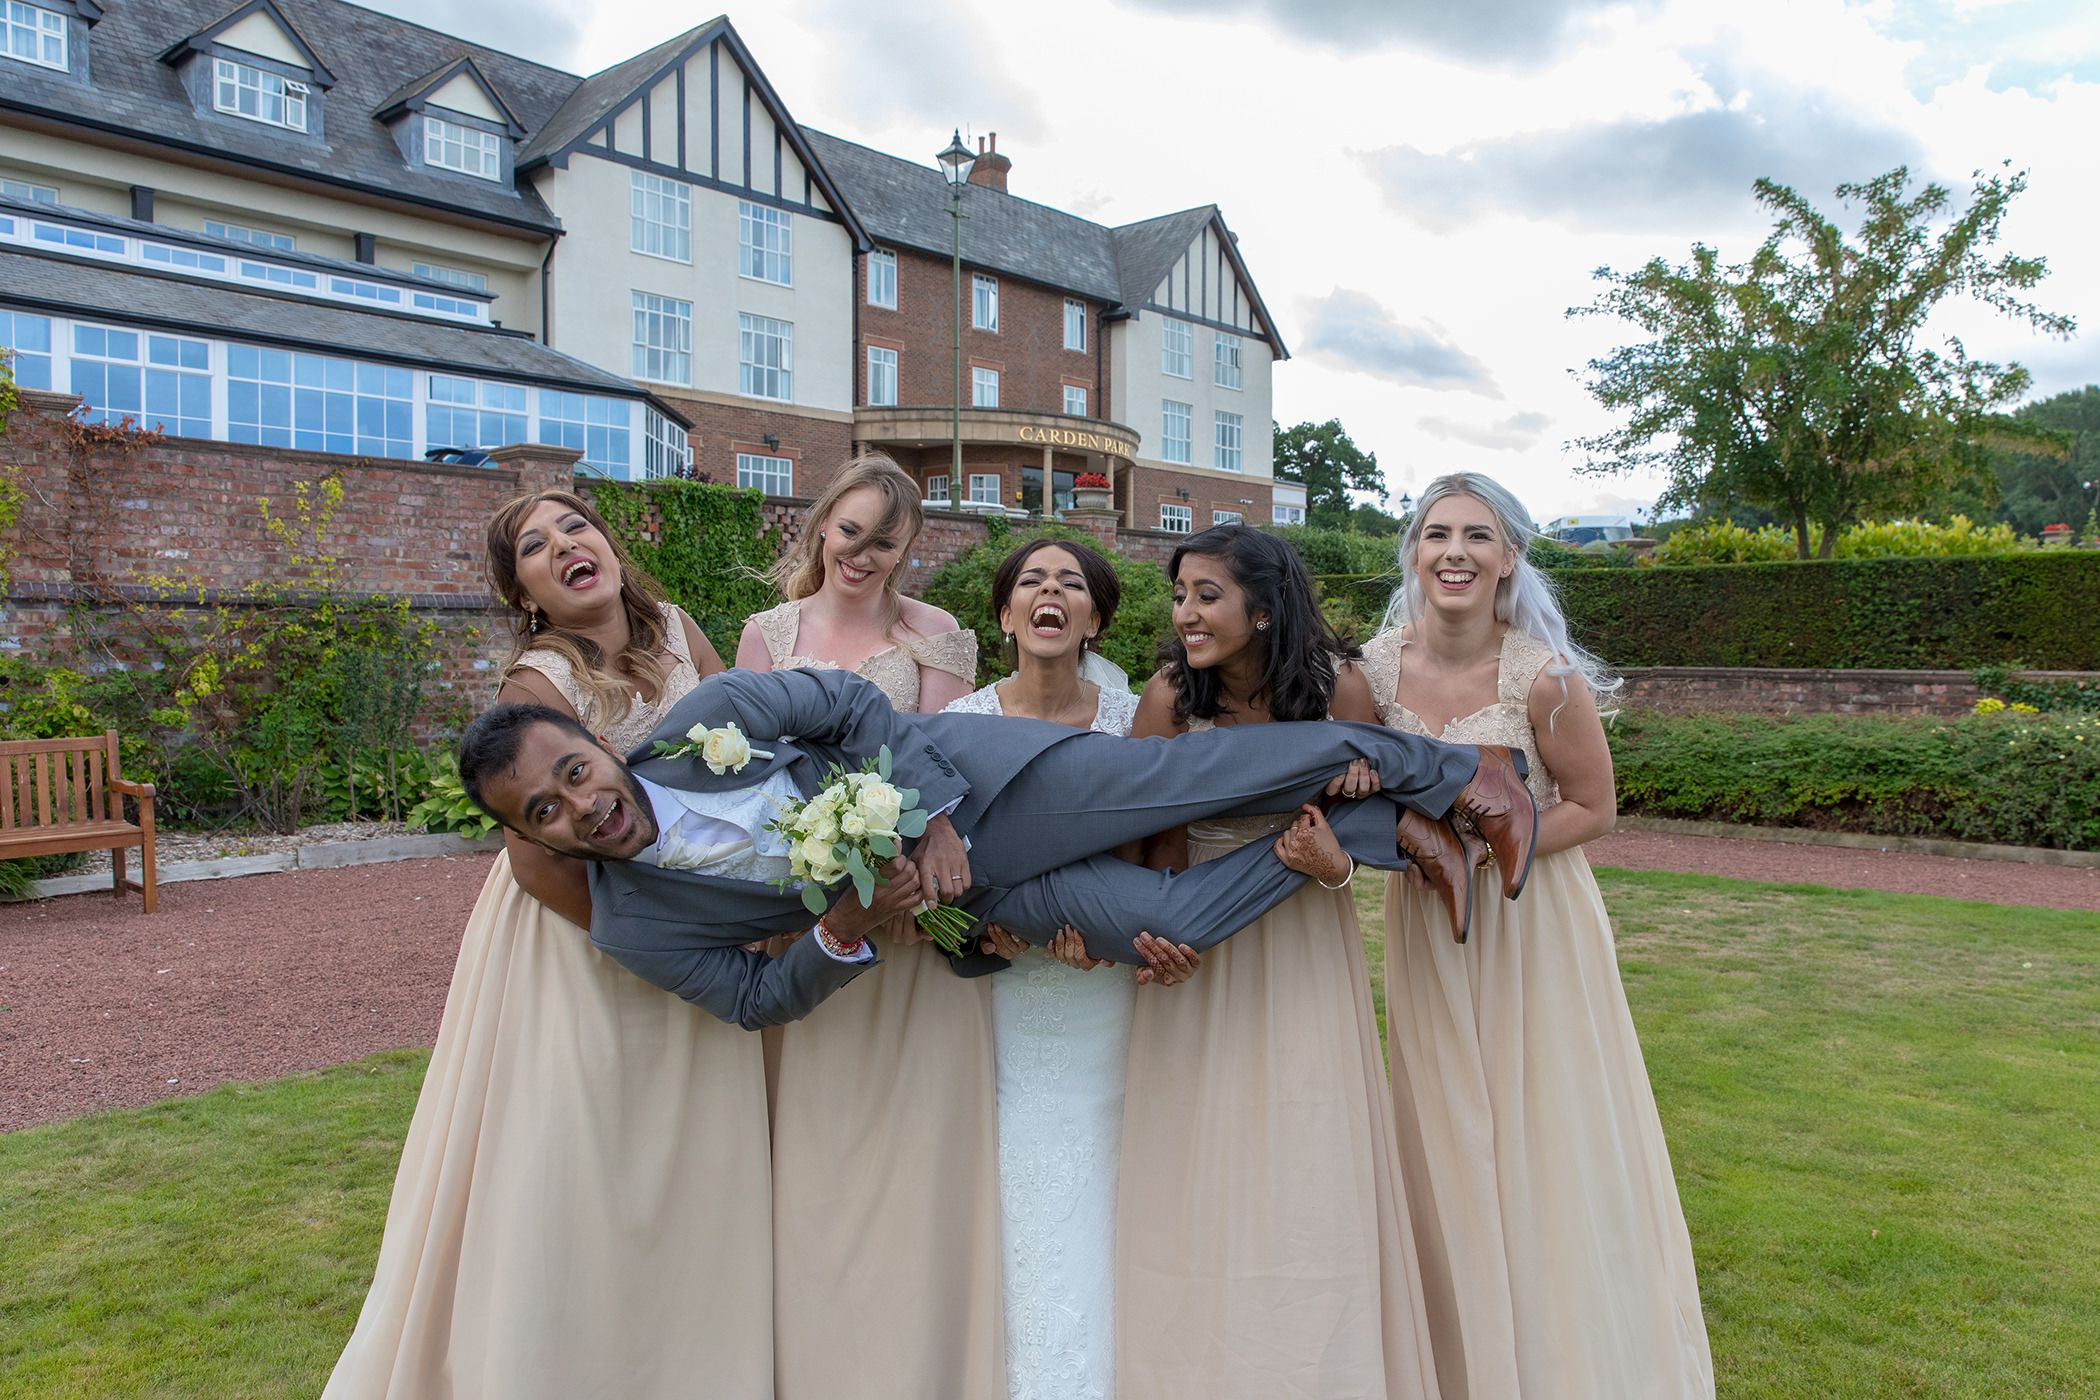 groom and bridesmaids carrying him